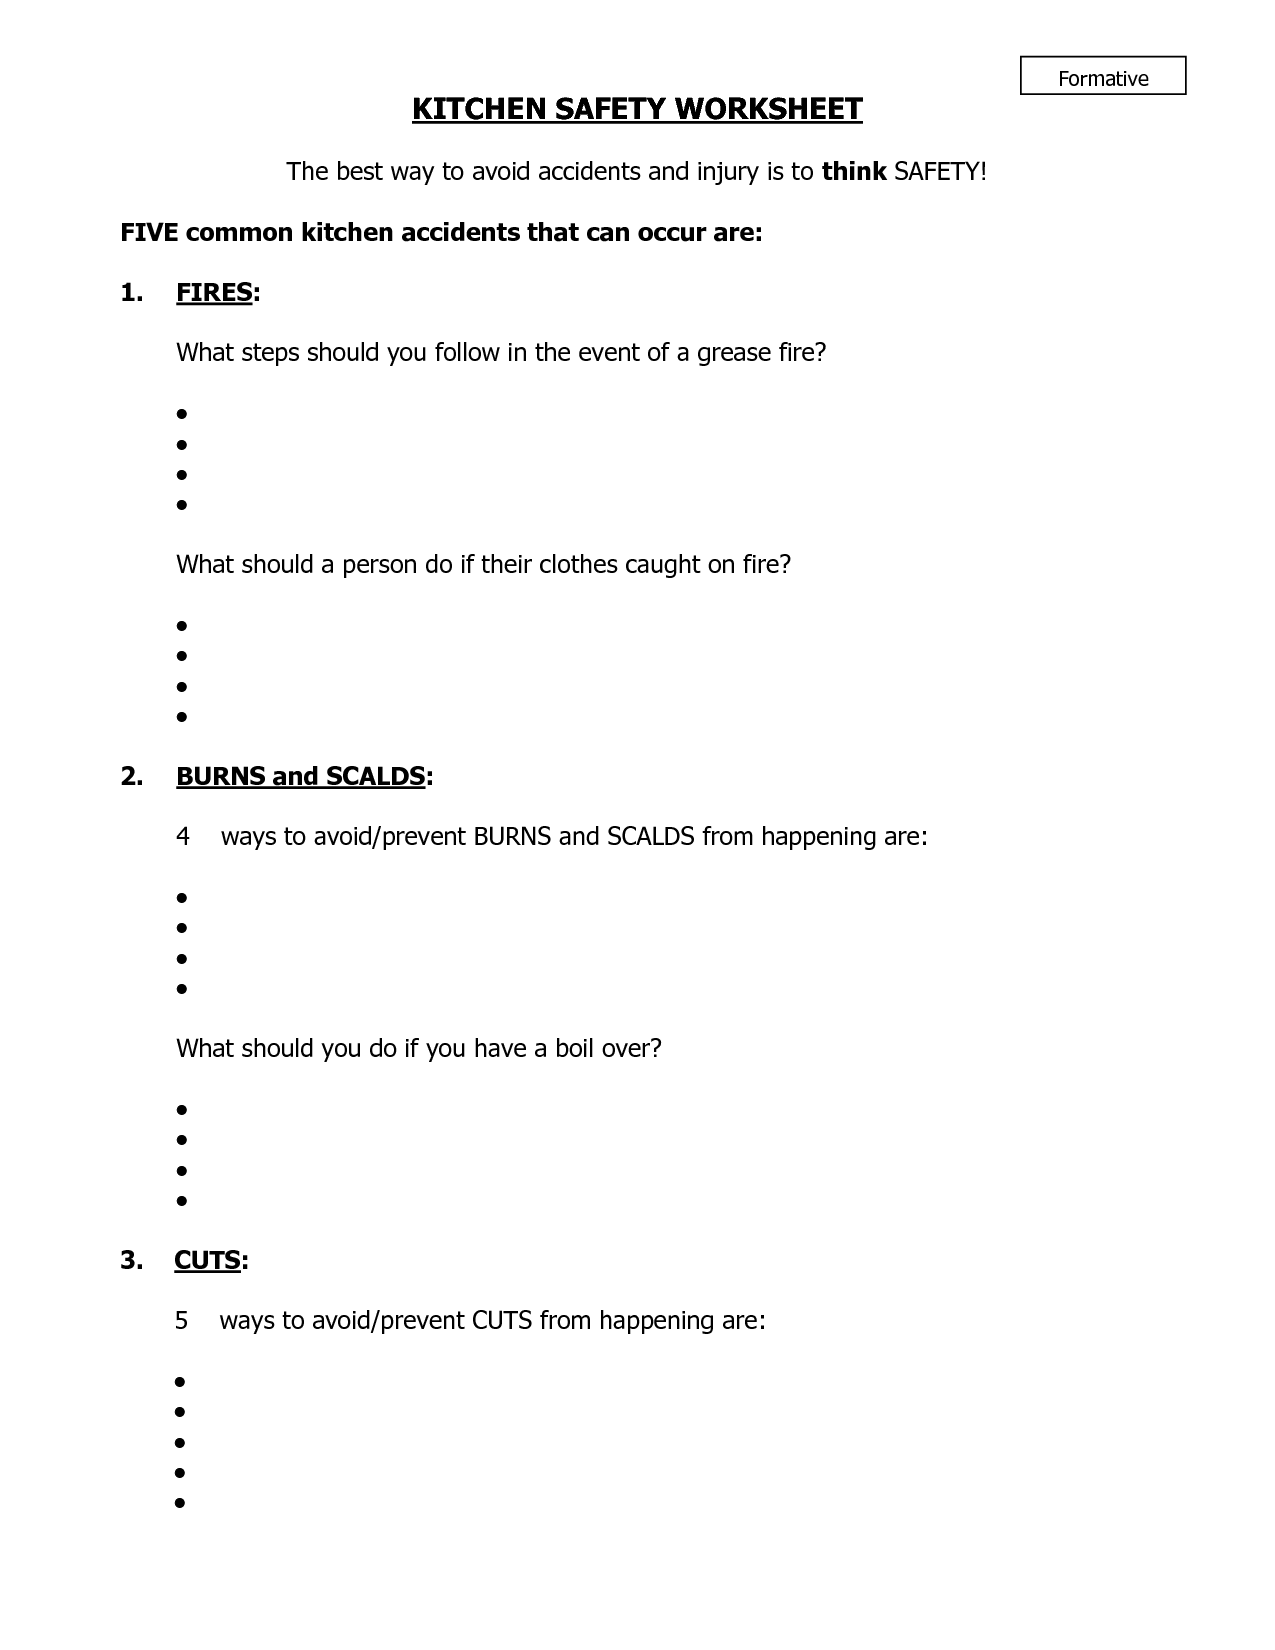 Home Safety Worksheets | Safety Worksheets http://www.docstoc.com ...